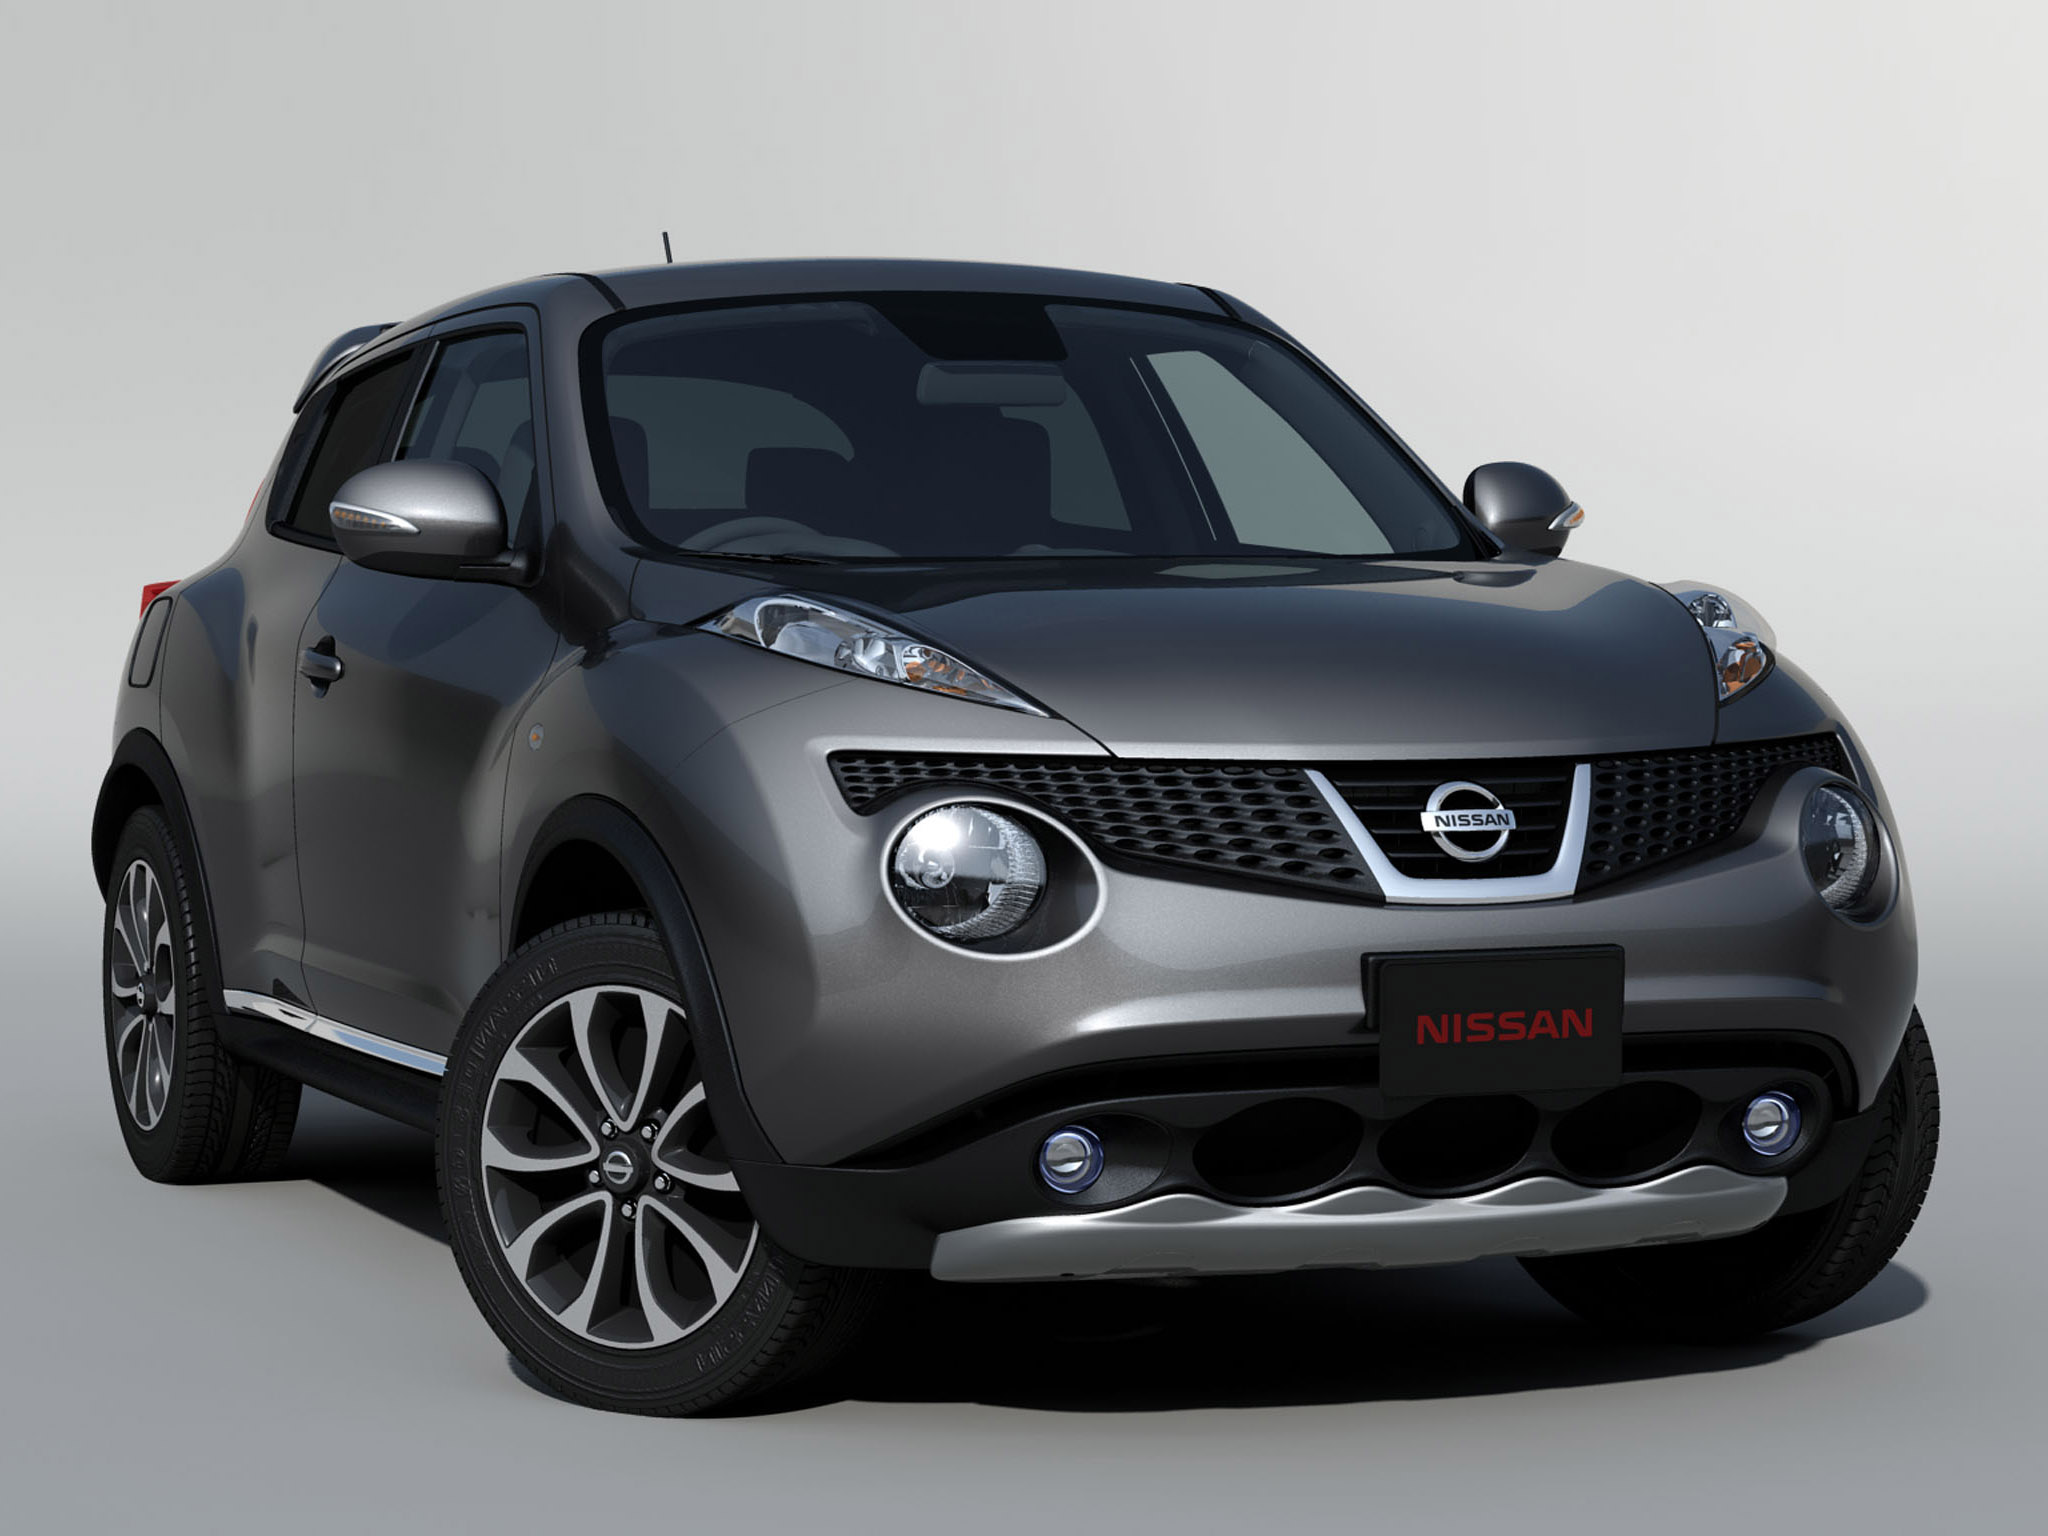 nissan juke sports package 2011 nissan juke sports package 2011 photo 01 car in pictures car. Black Bedroom Furniture Sets. Home Design Ideas